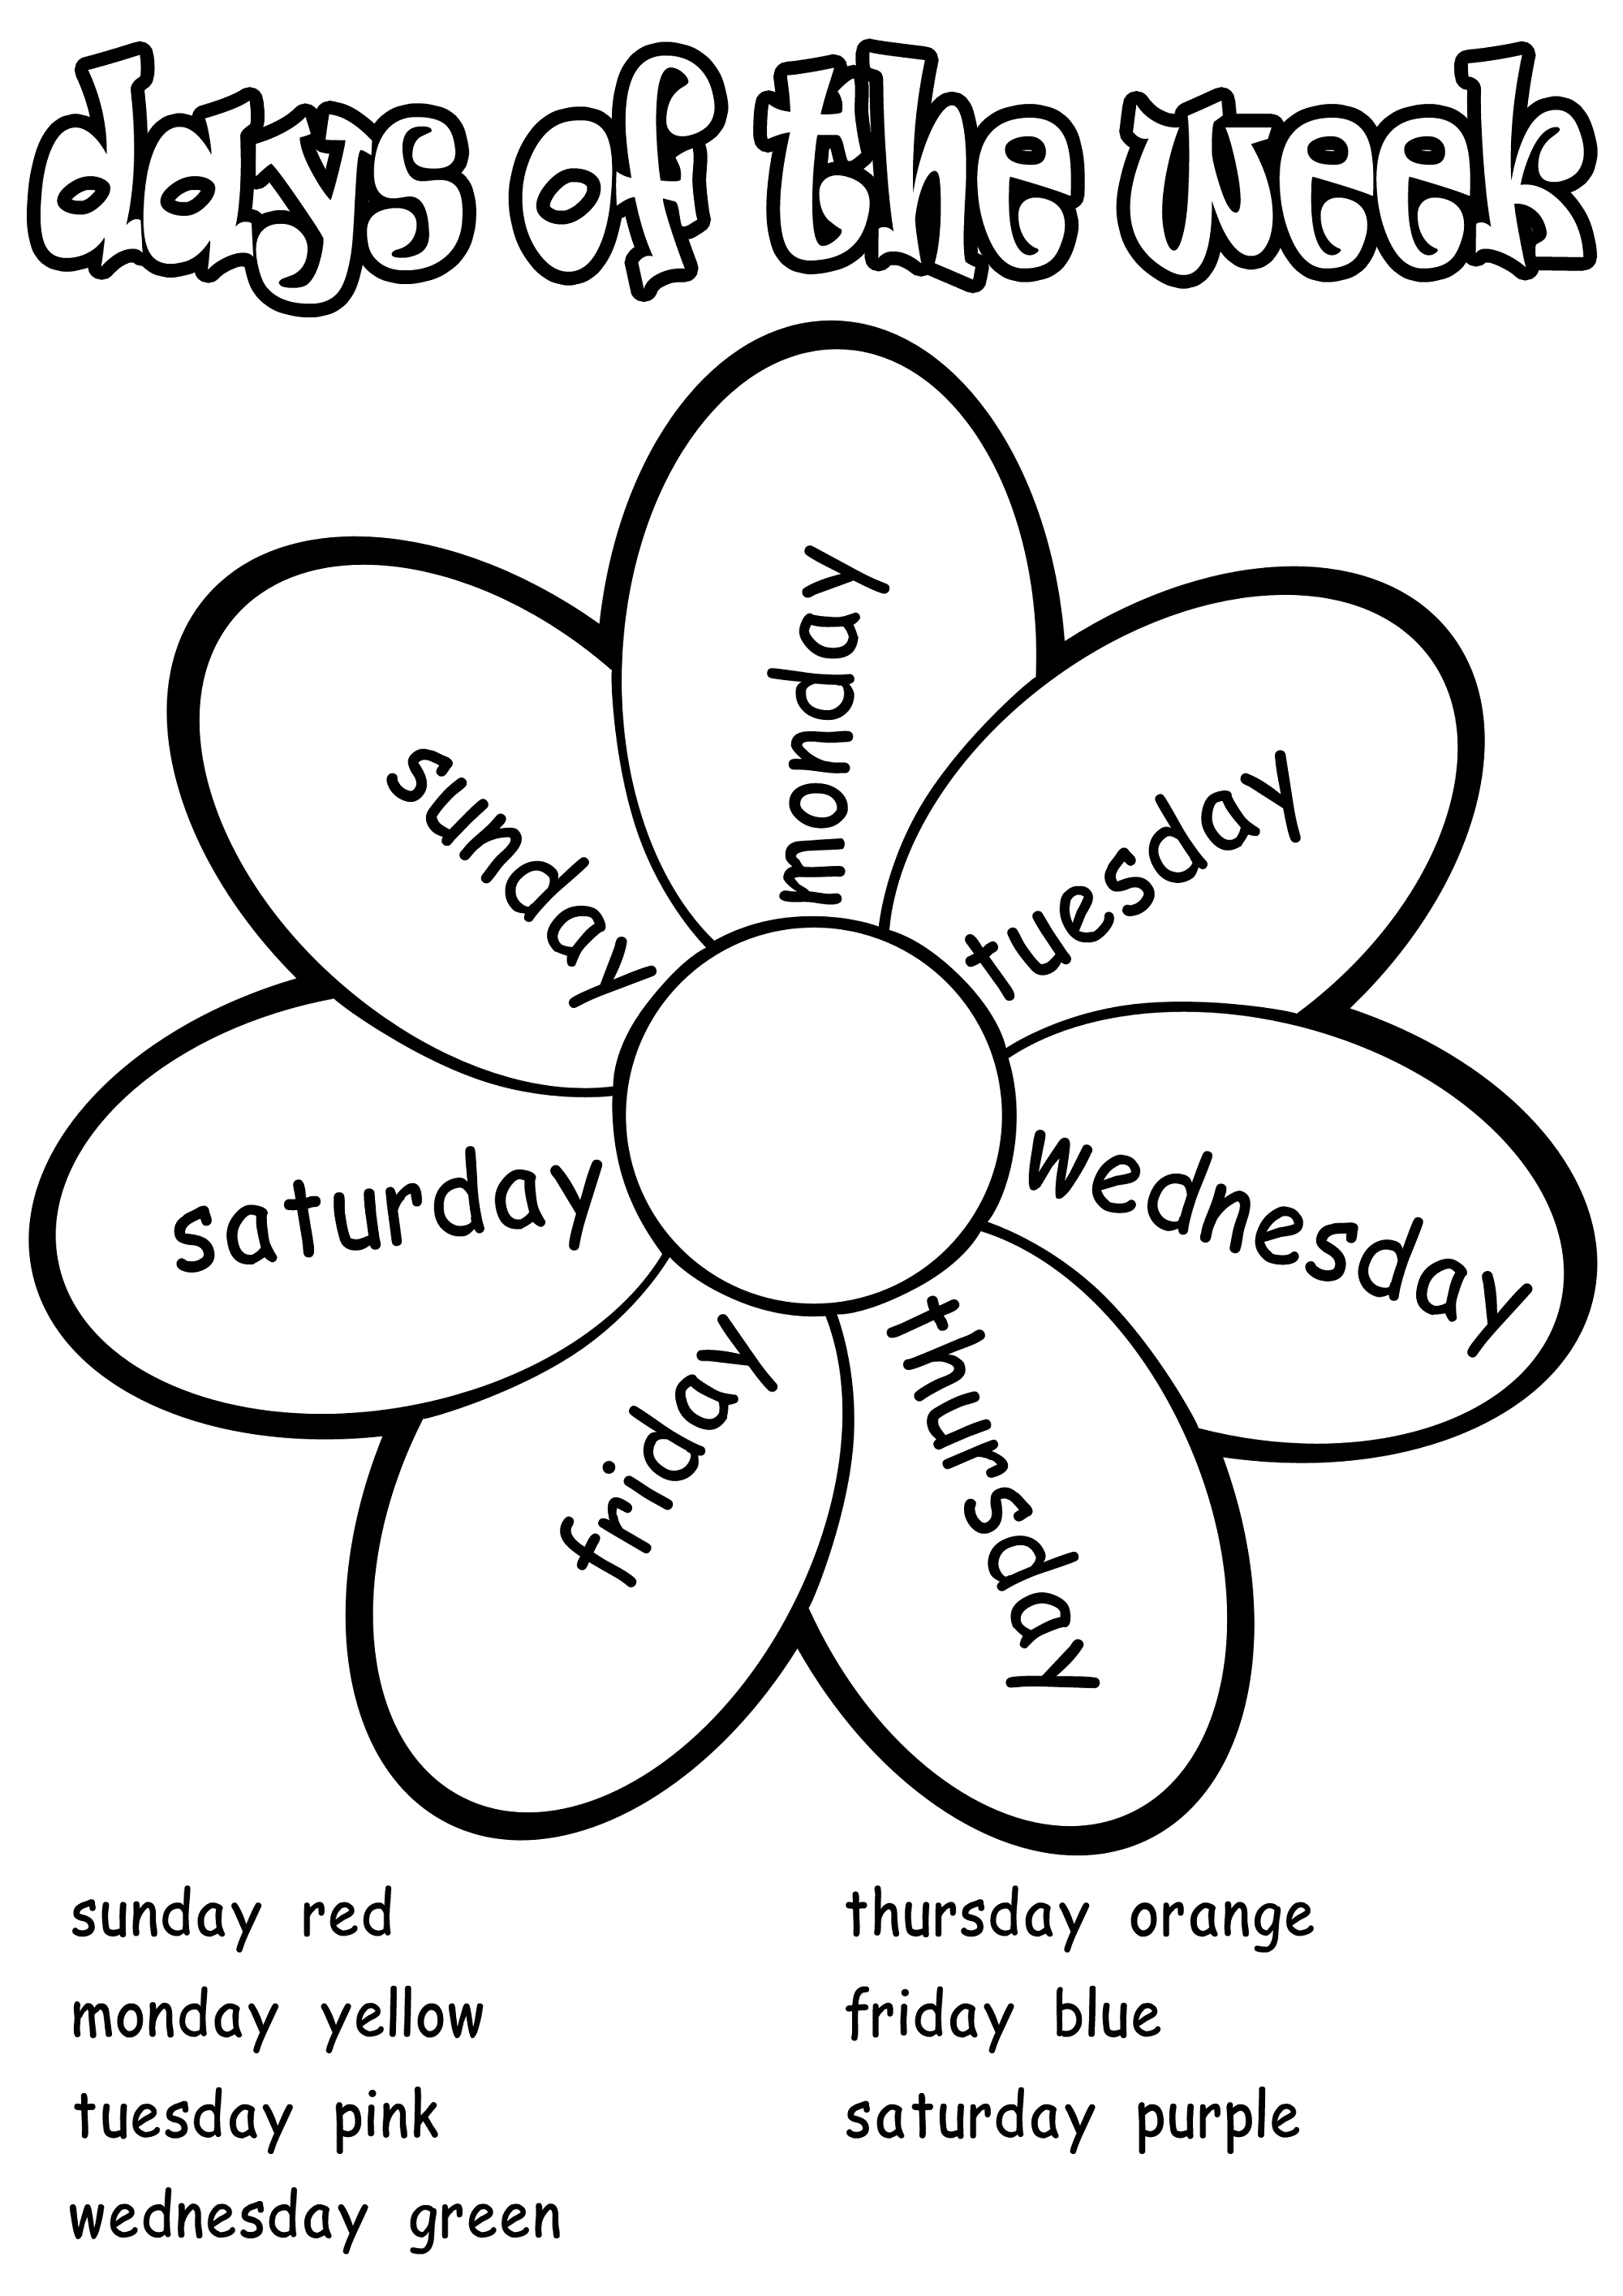 Worksheet For Days Of The Week For Kids In